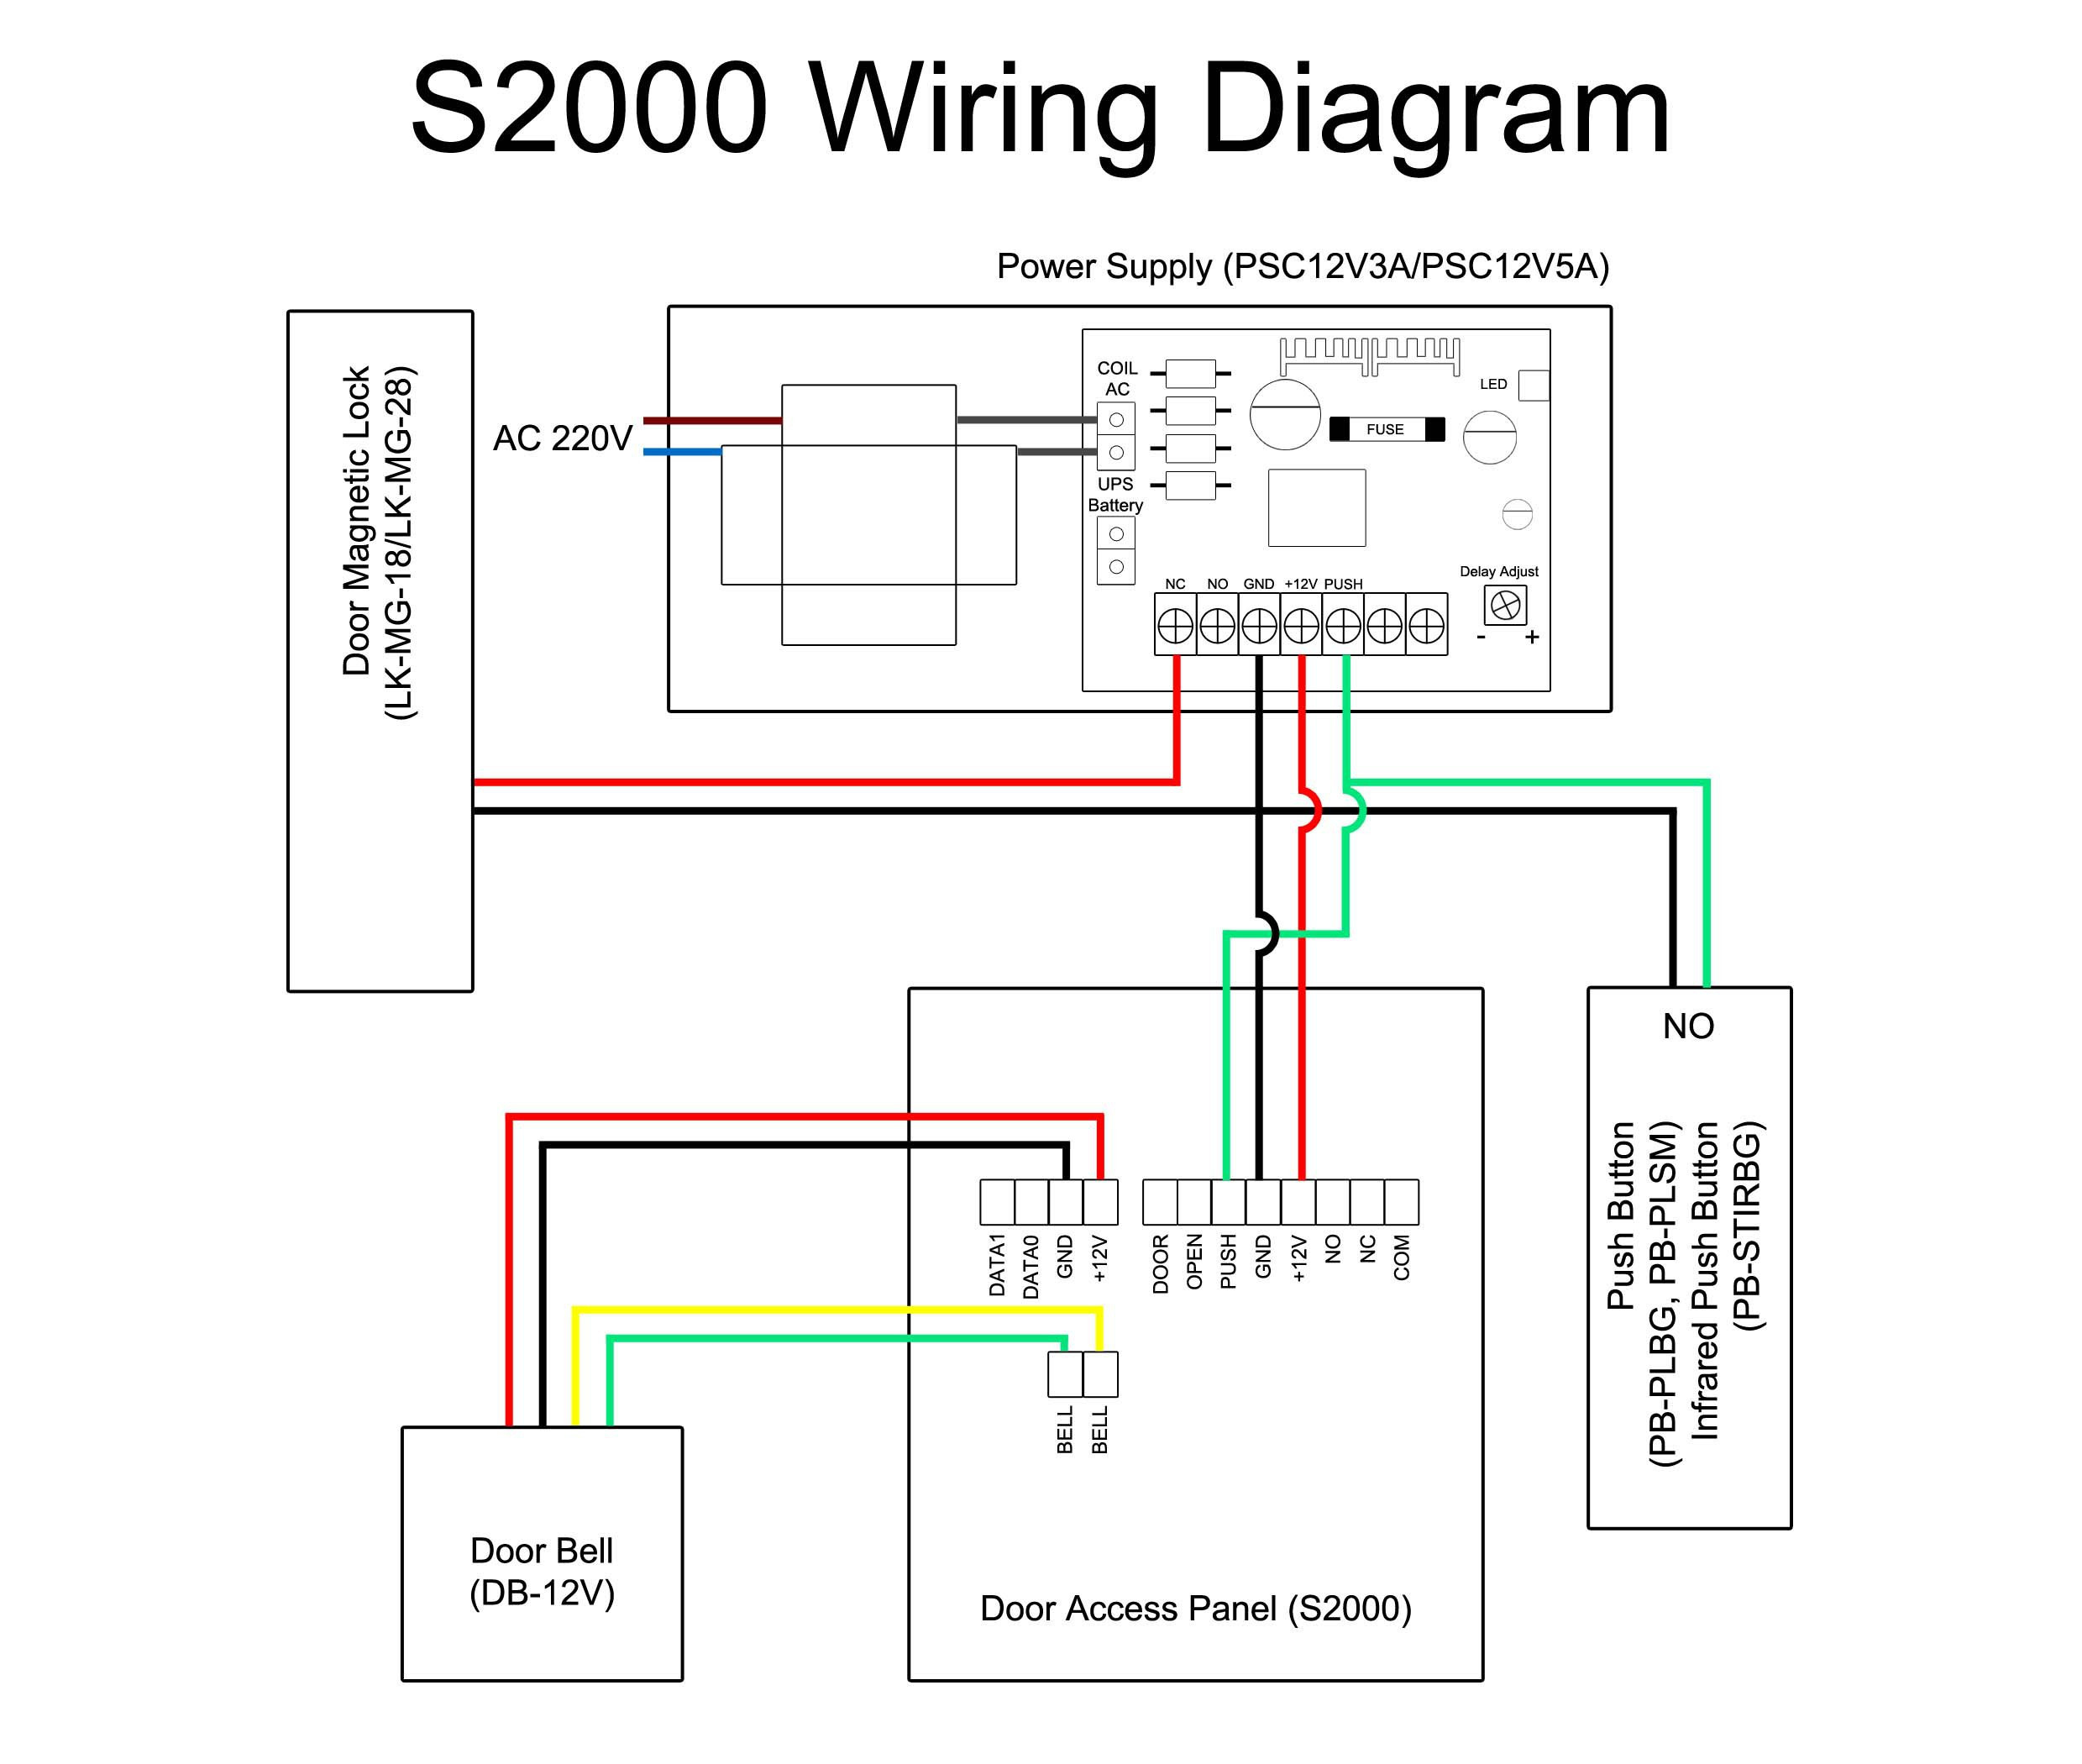 samsung security camera wiring diagram Collection-Wiring Diagram for Home Security Camera Save Home Cctv Wiring Diagram Save Best Harbor Freight 14-d